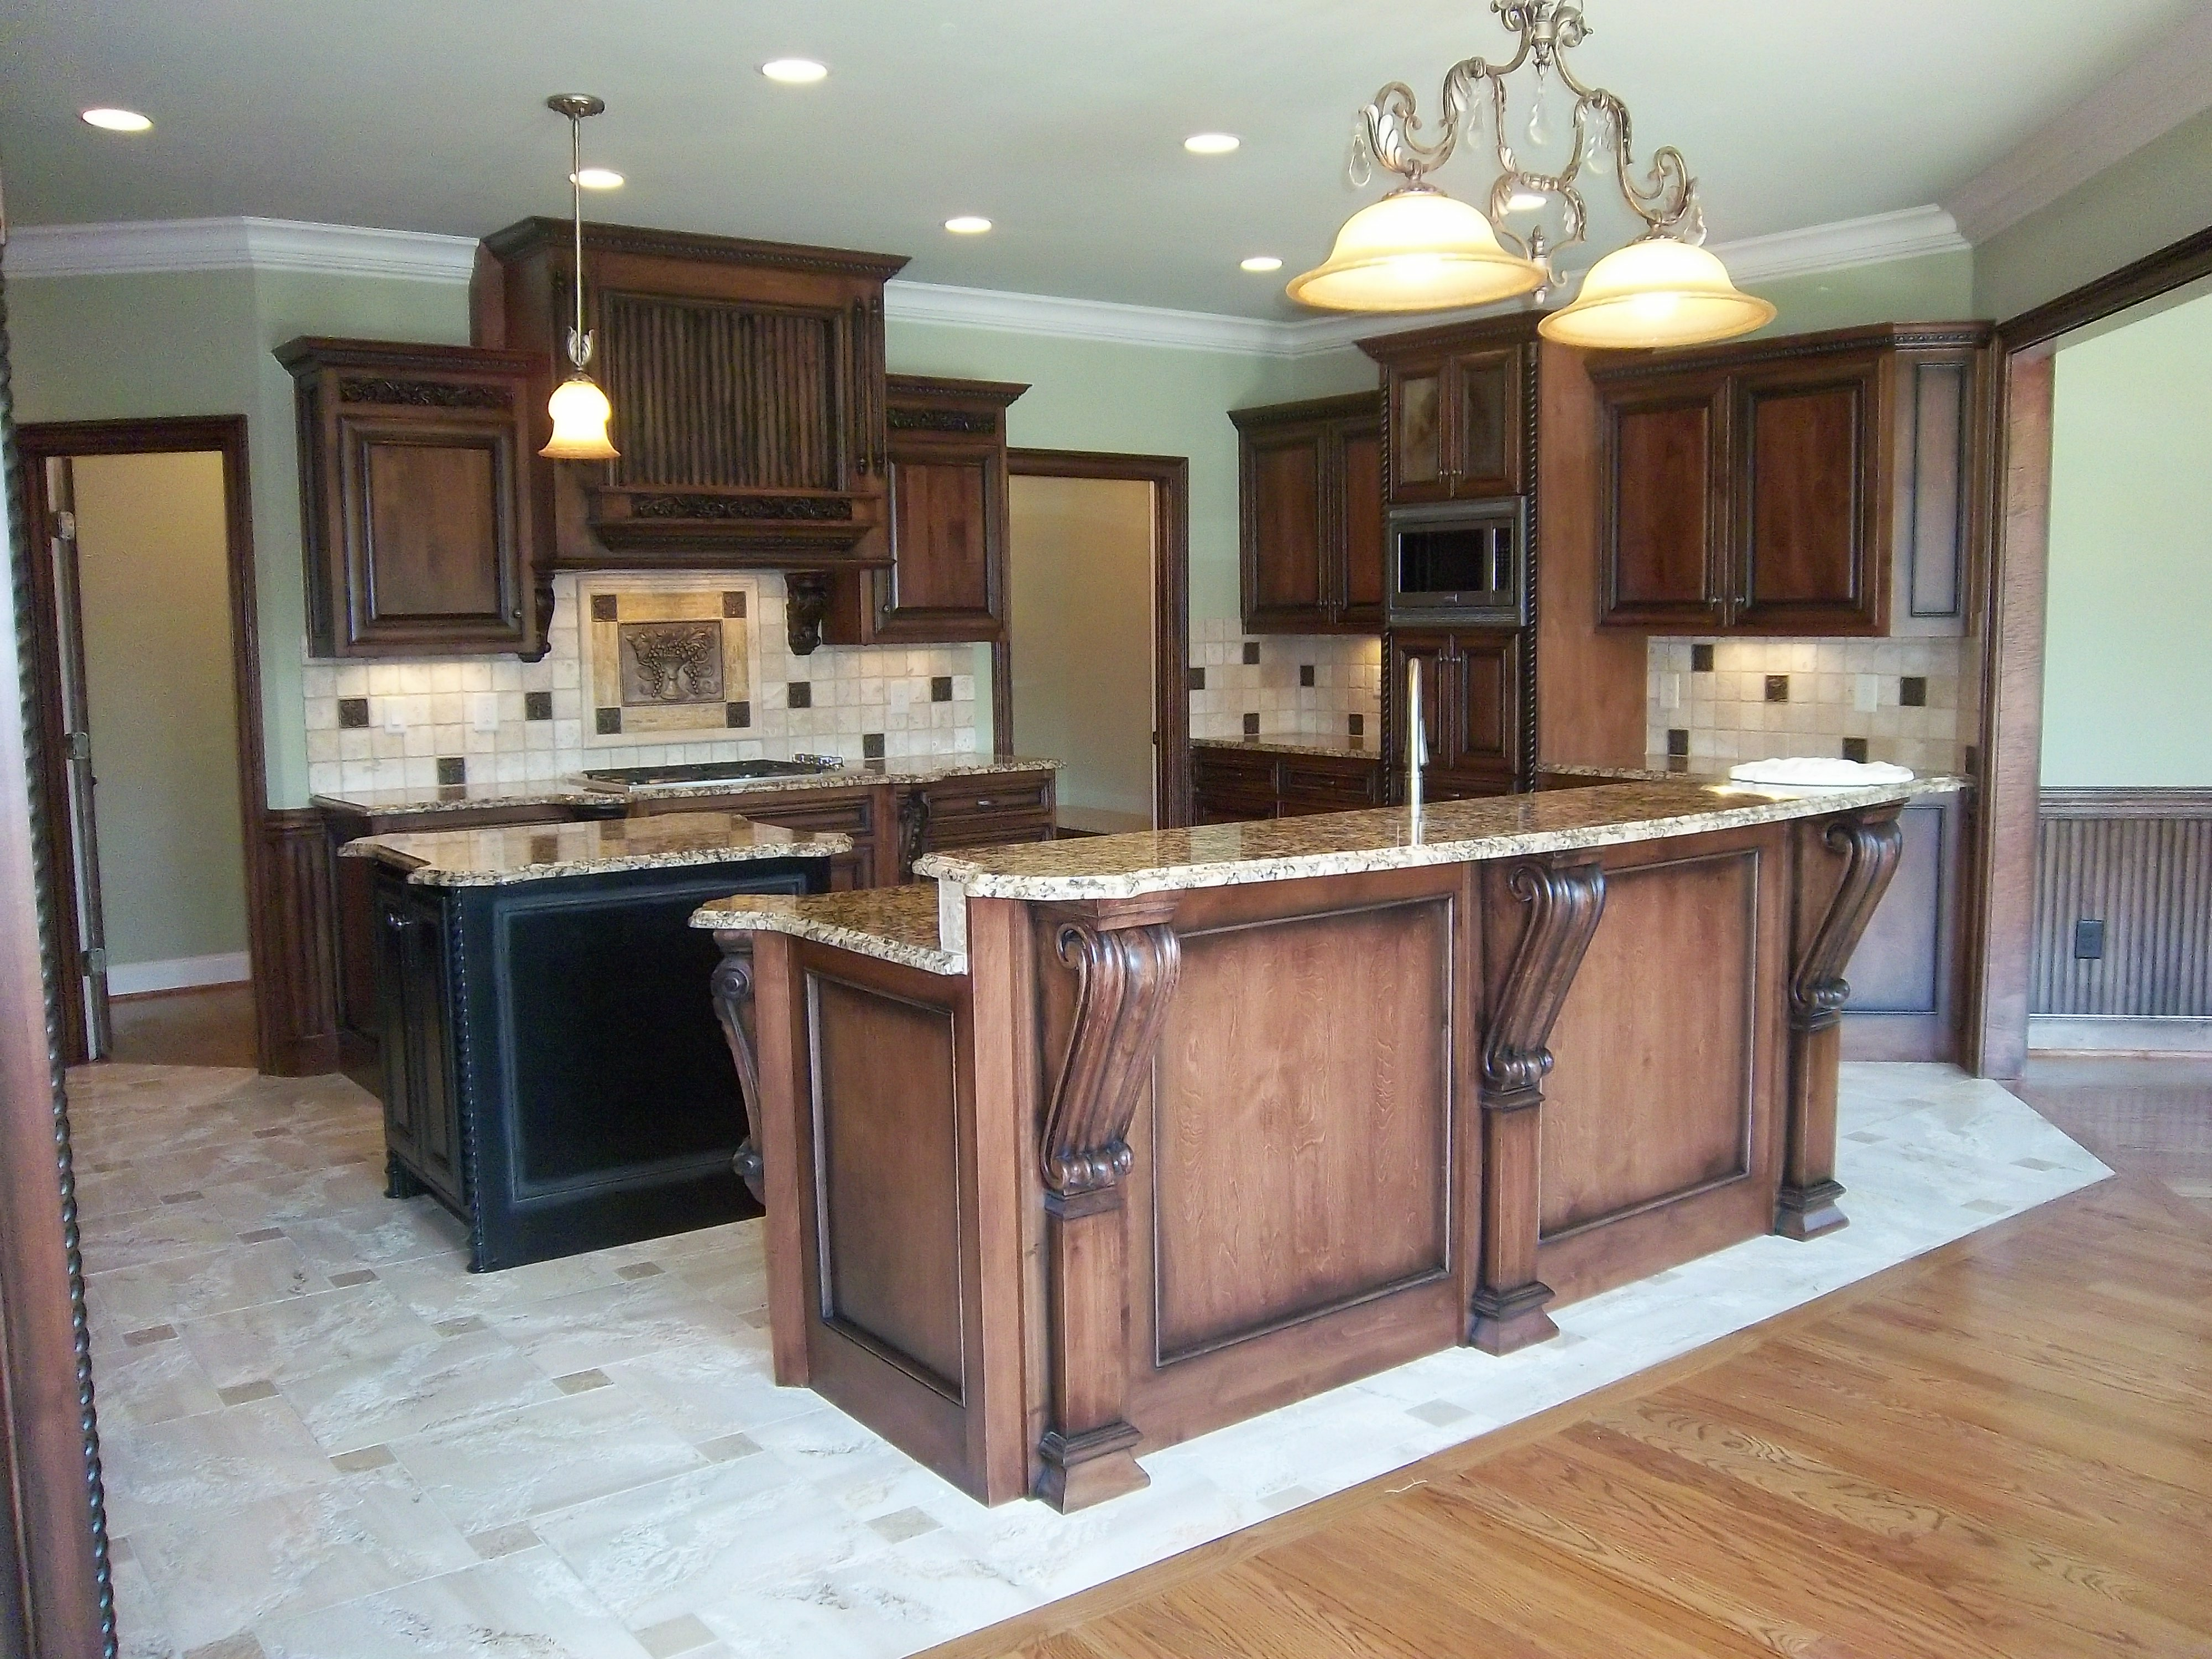 kitchens kitchen remodeling contractor Kitchen REMODELING CONTRACTOR LOCAL AREAS WE SERVE